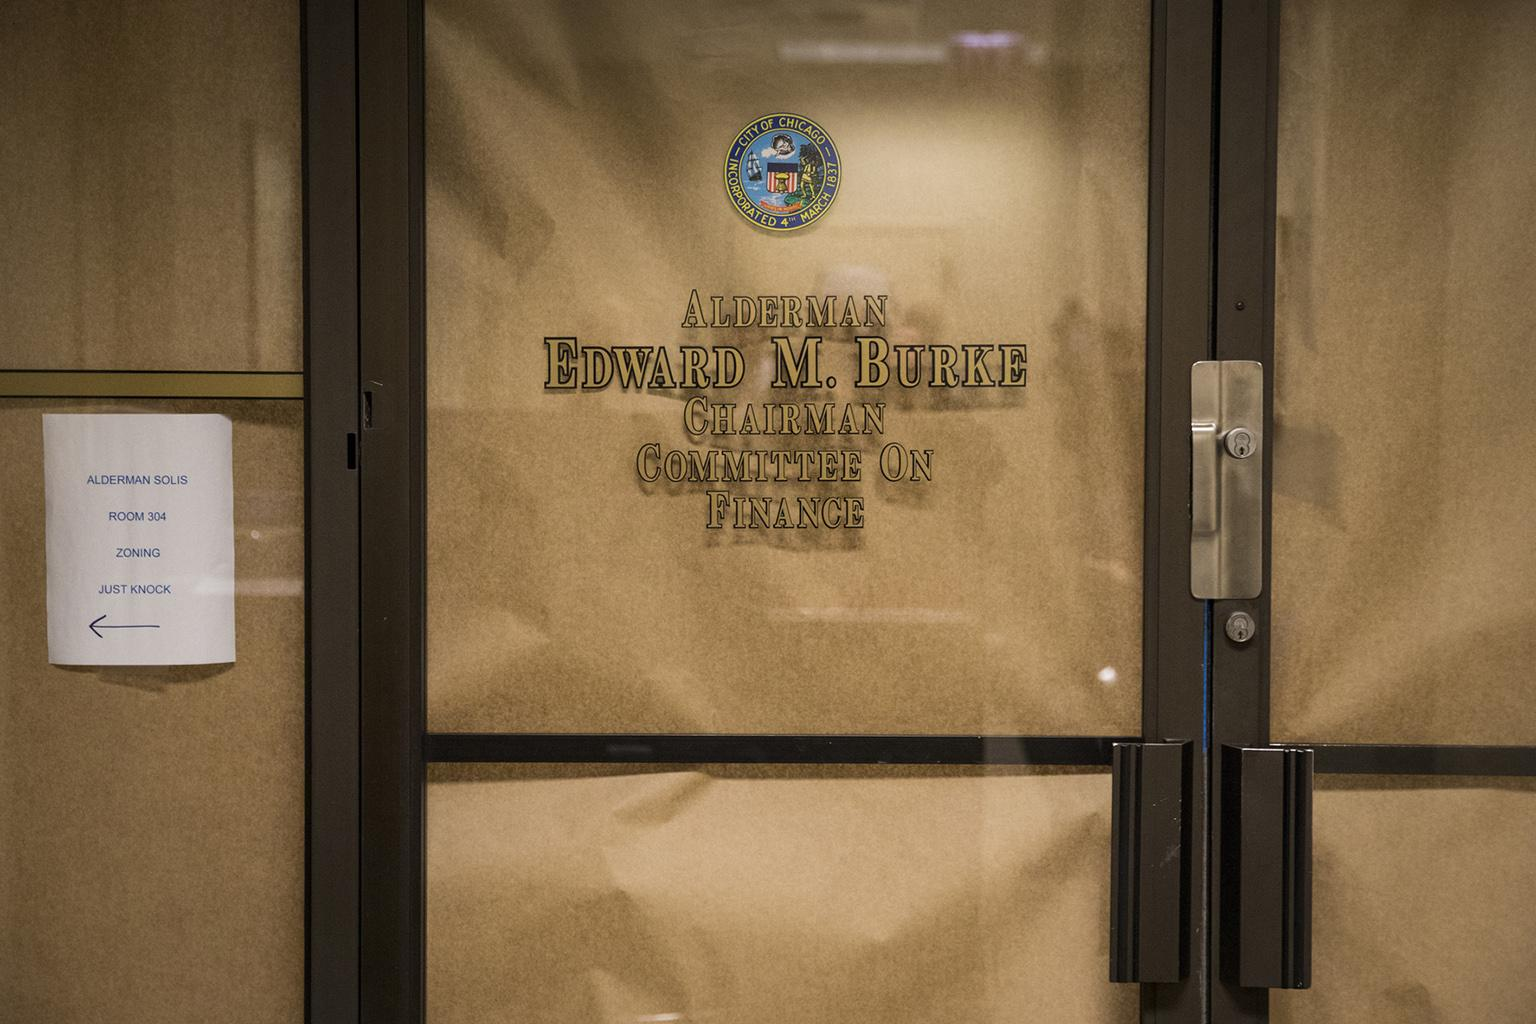 Brown paper covers the windows of Ald. Edward Burke's office at Chicago City Hall on Thursday morning, Nov. 29, 2018. (Ashlee Rezin / Chicago Sun-Times via AP)